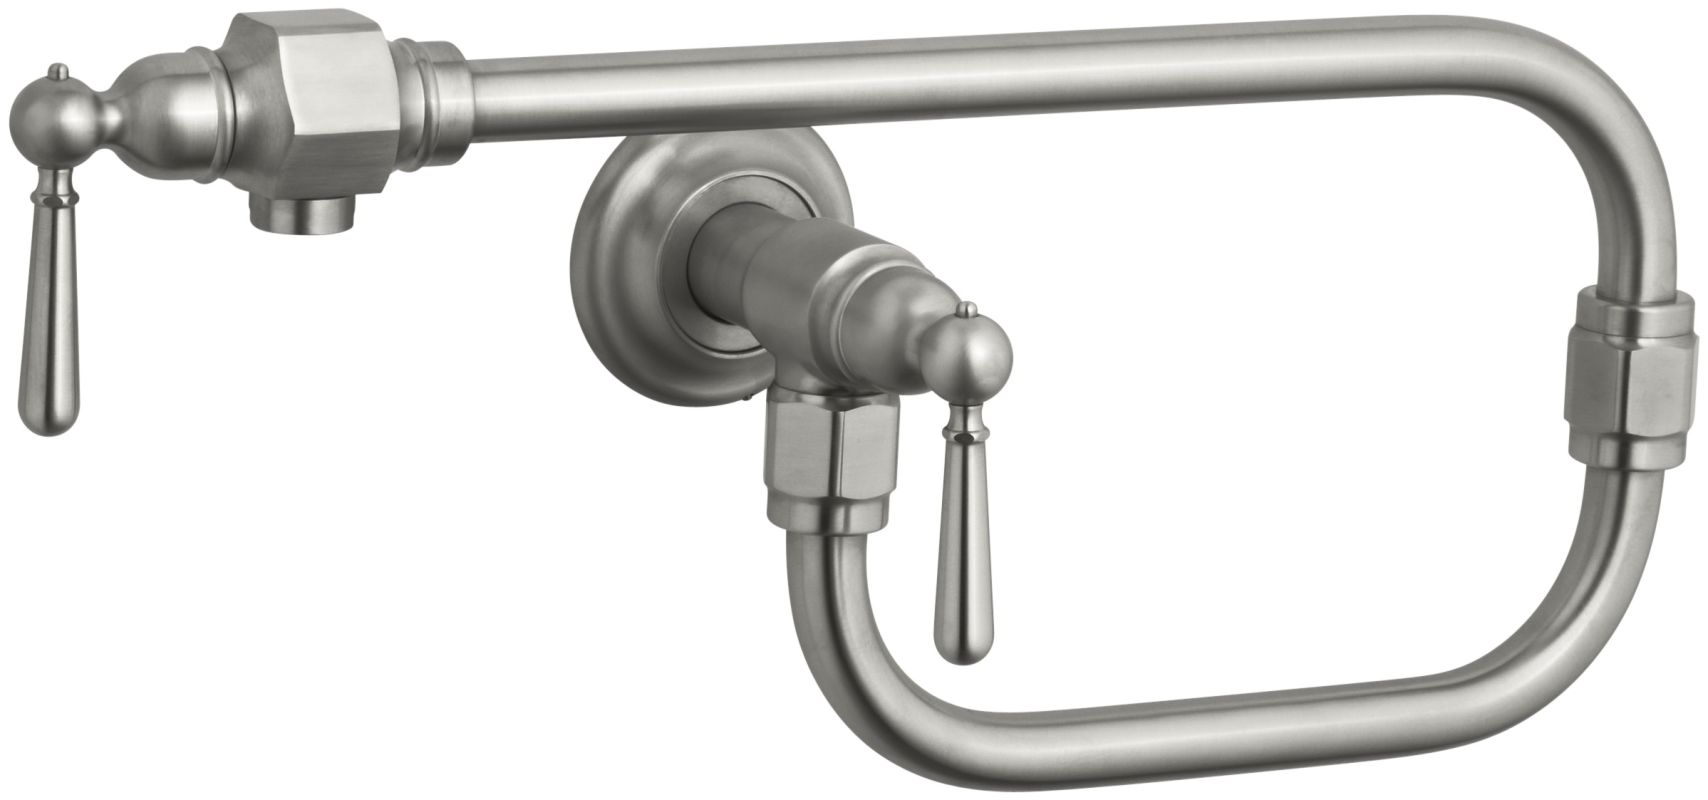 Faucet Direct : Kohler K-7322-4-BS Brushed Stainless Double Handle Wall Mounted Pot ...